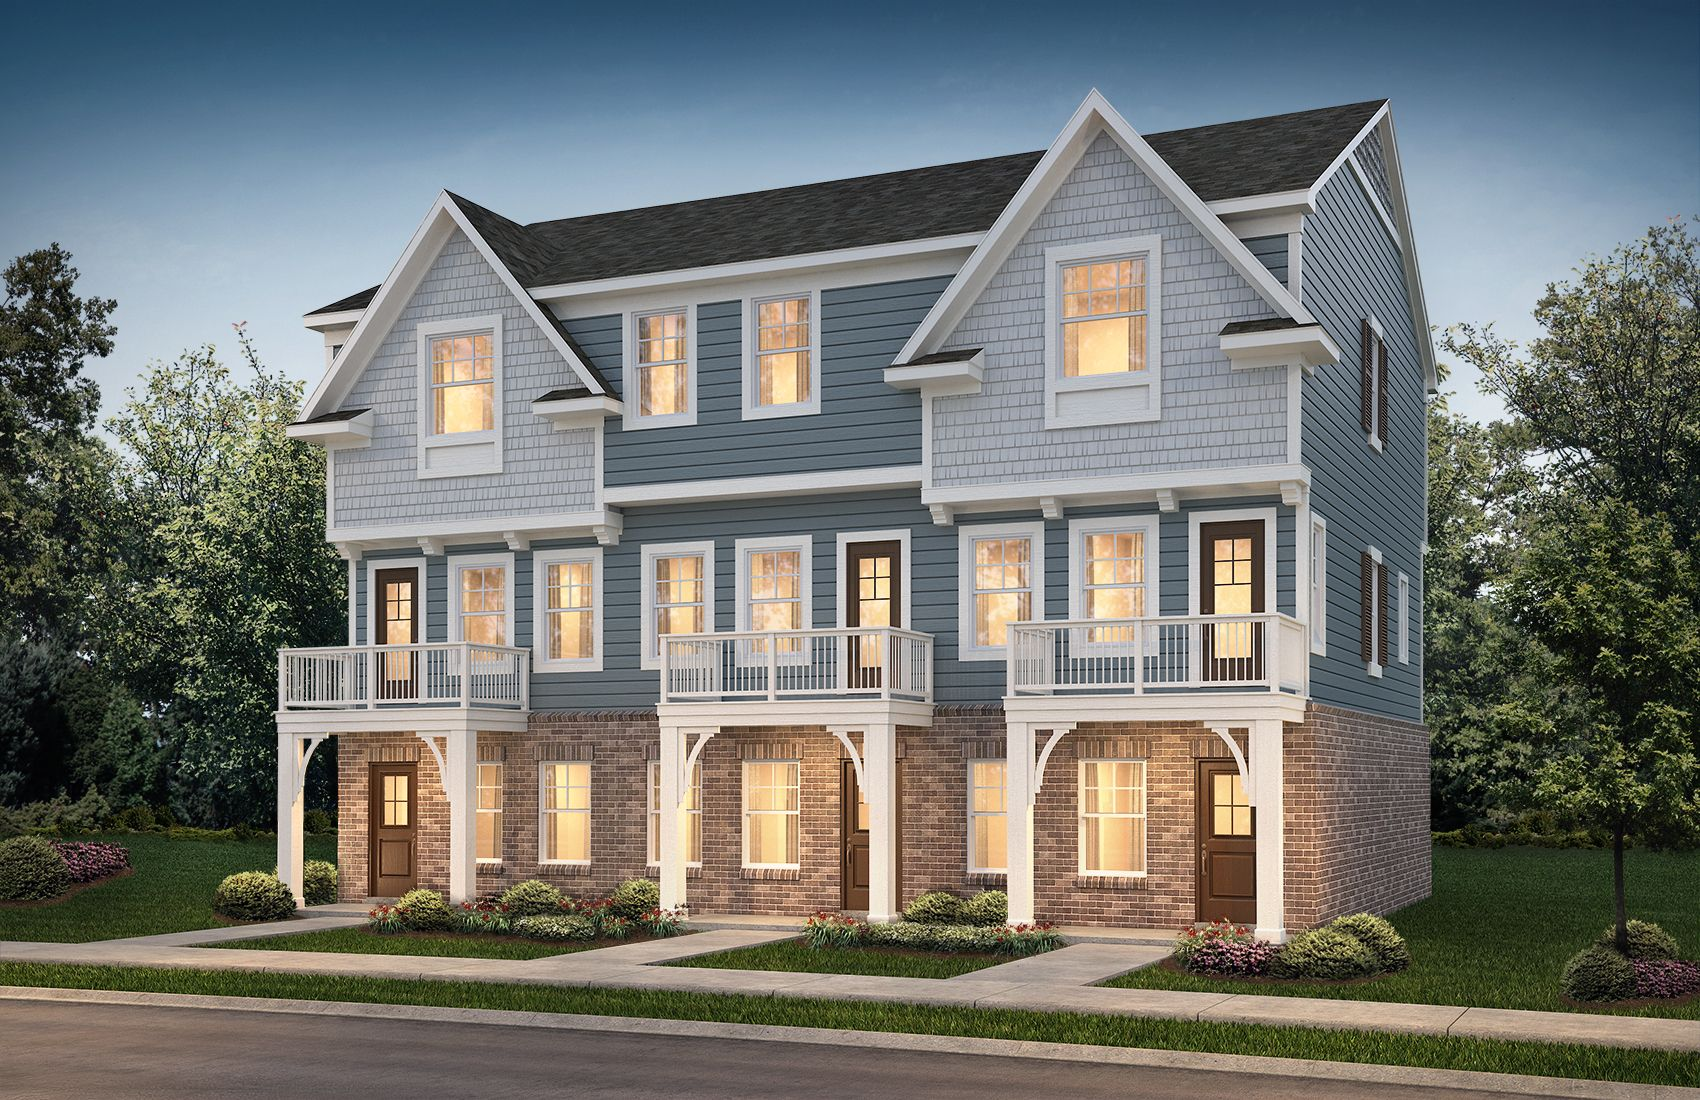 Aspen 3 unit town home building